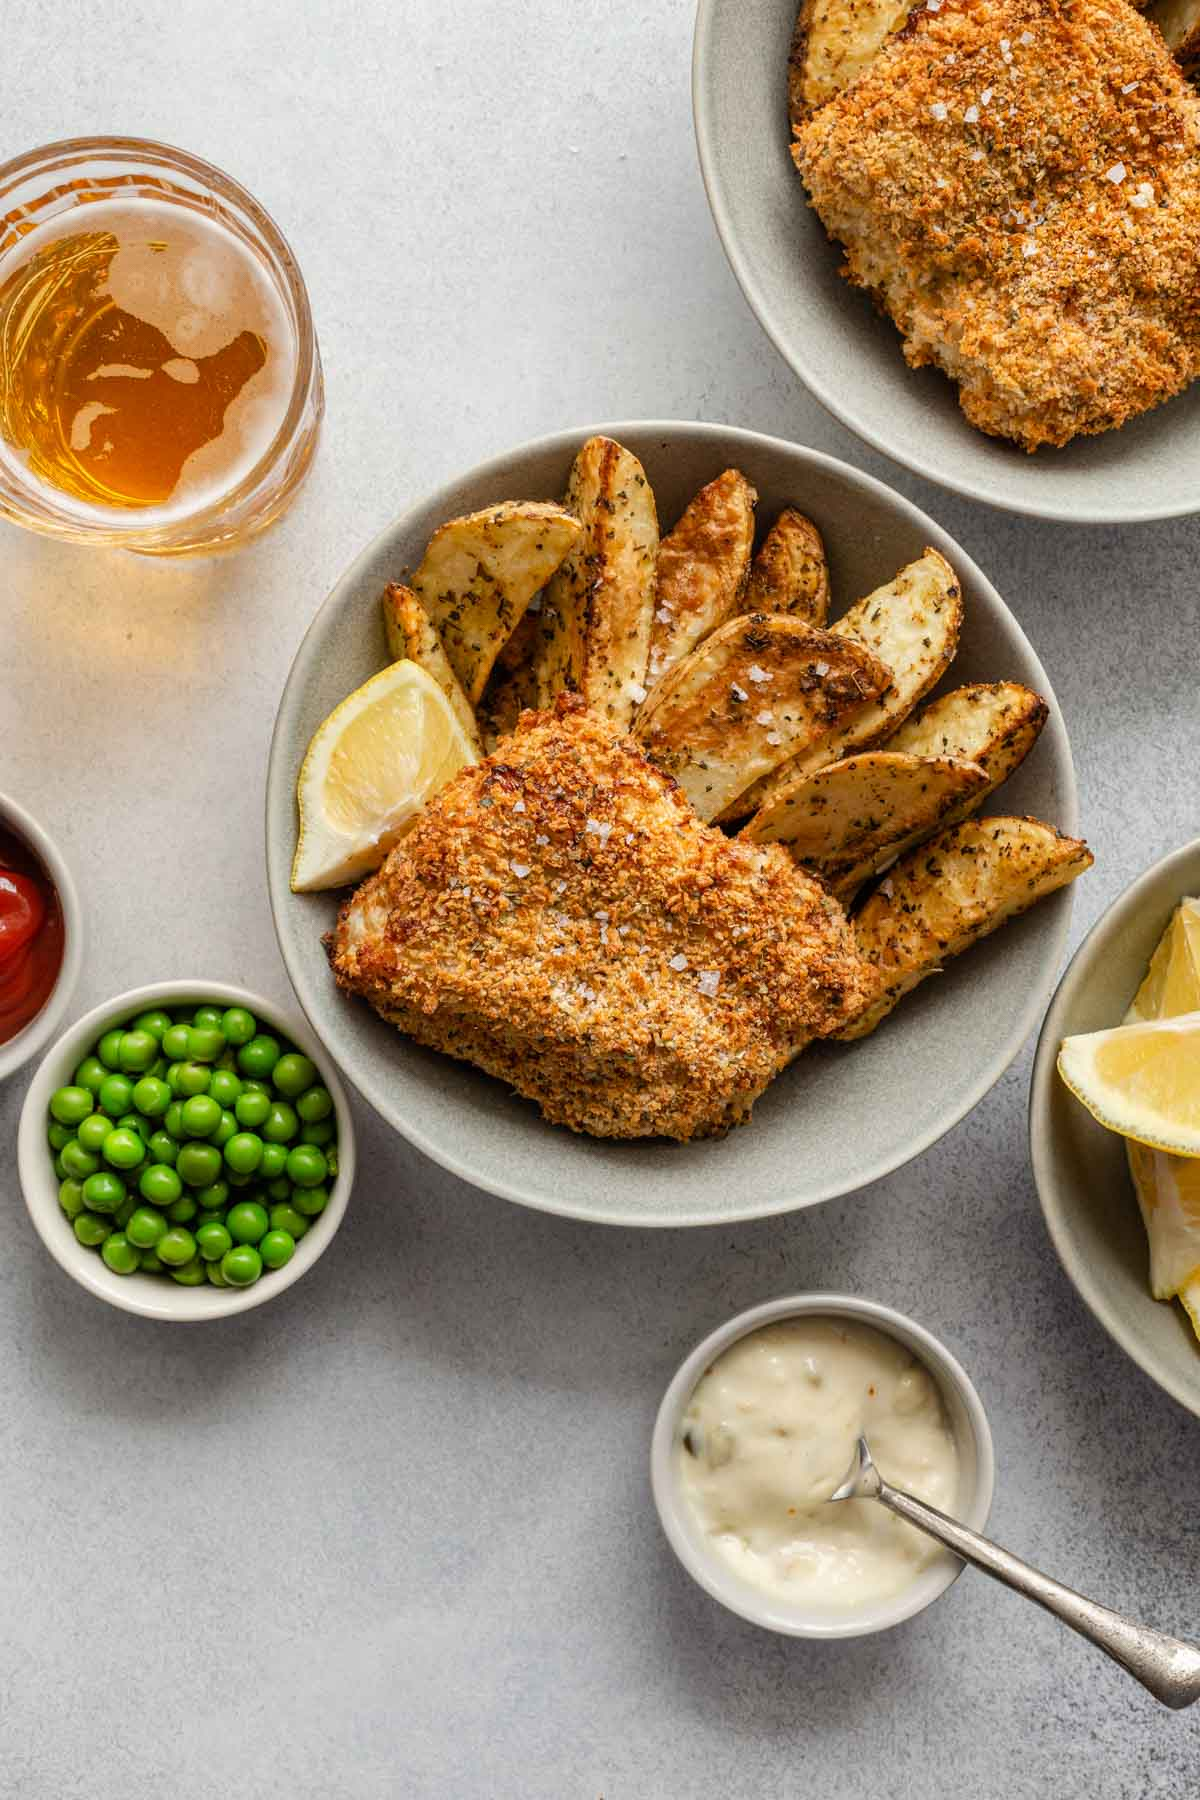 Overhead view of two bowls of breaded fish and wedge fries with peas and tartar sauce off to the sides.